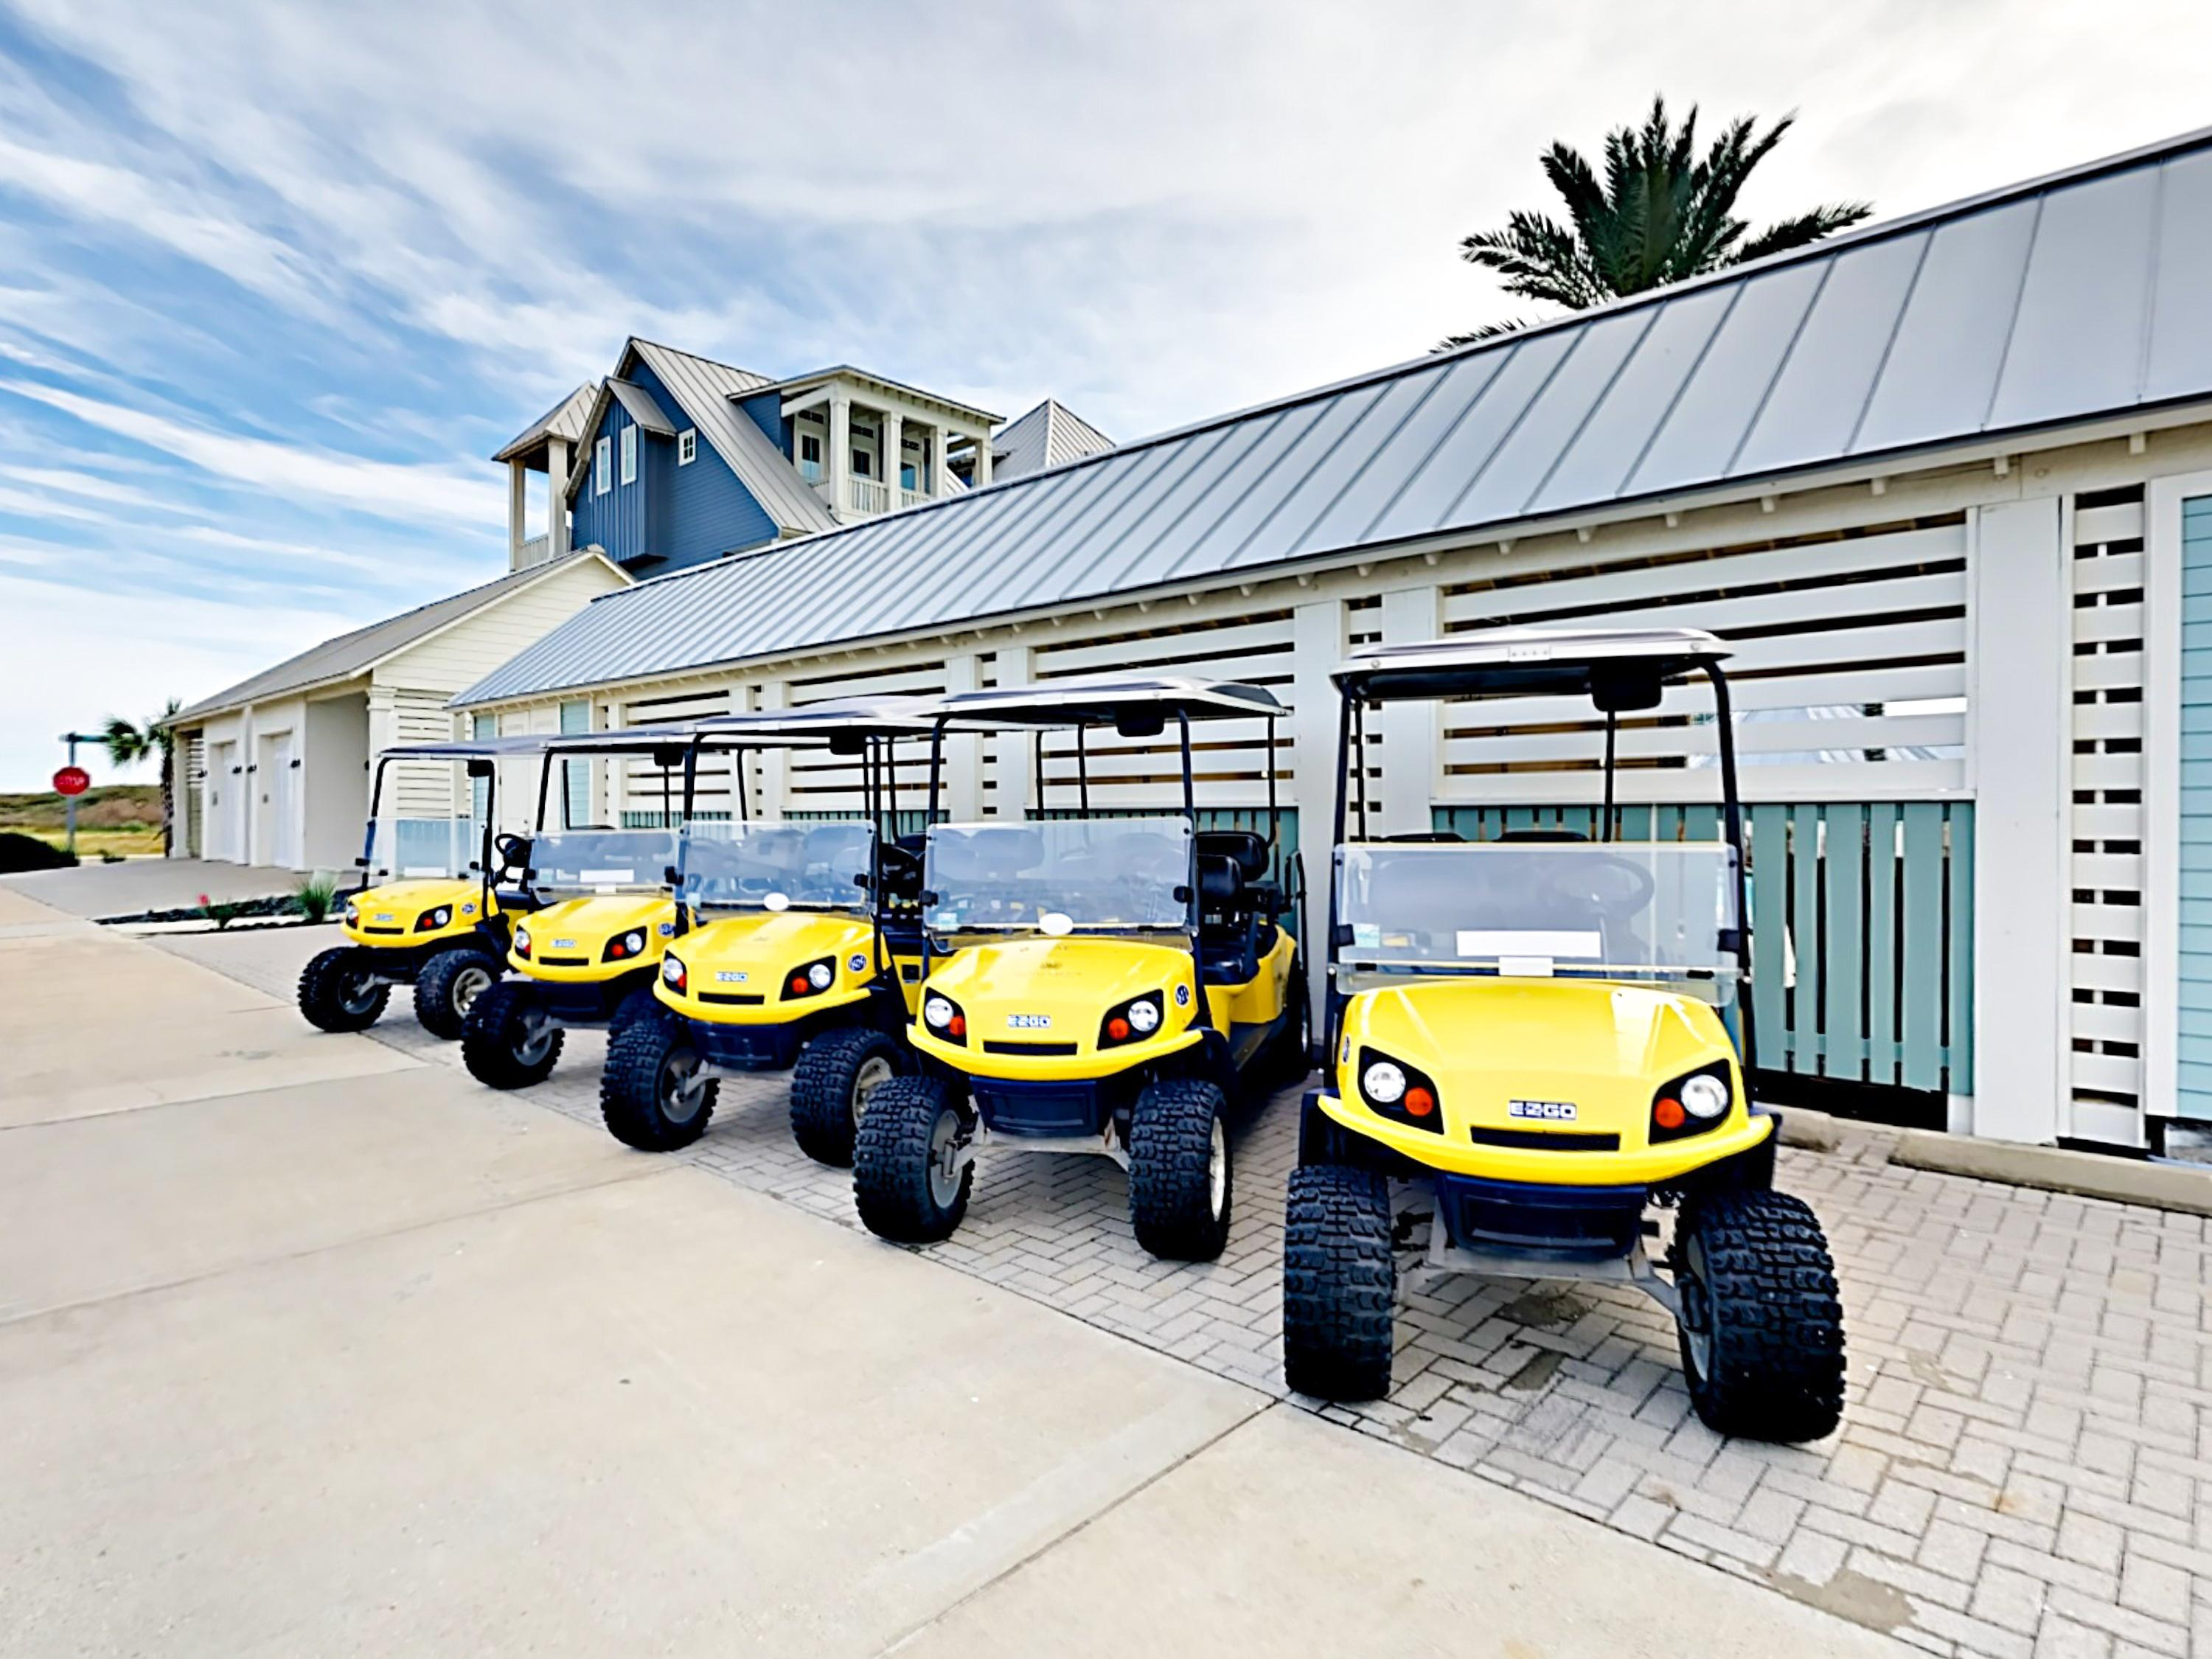 During the summer months, rental items such as golf carts, bicycles, beach chairs, and umbrellas are available.